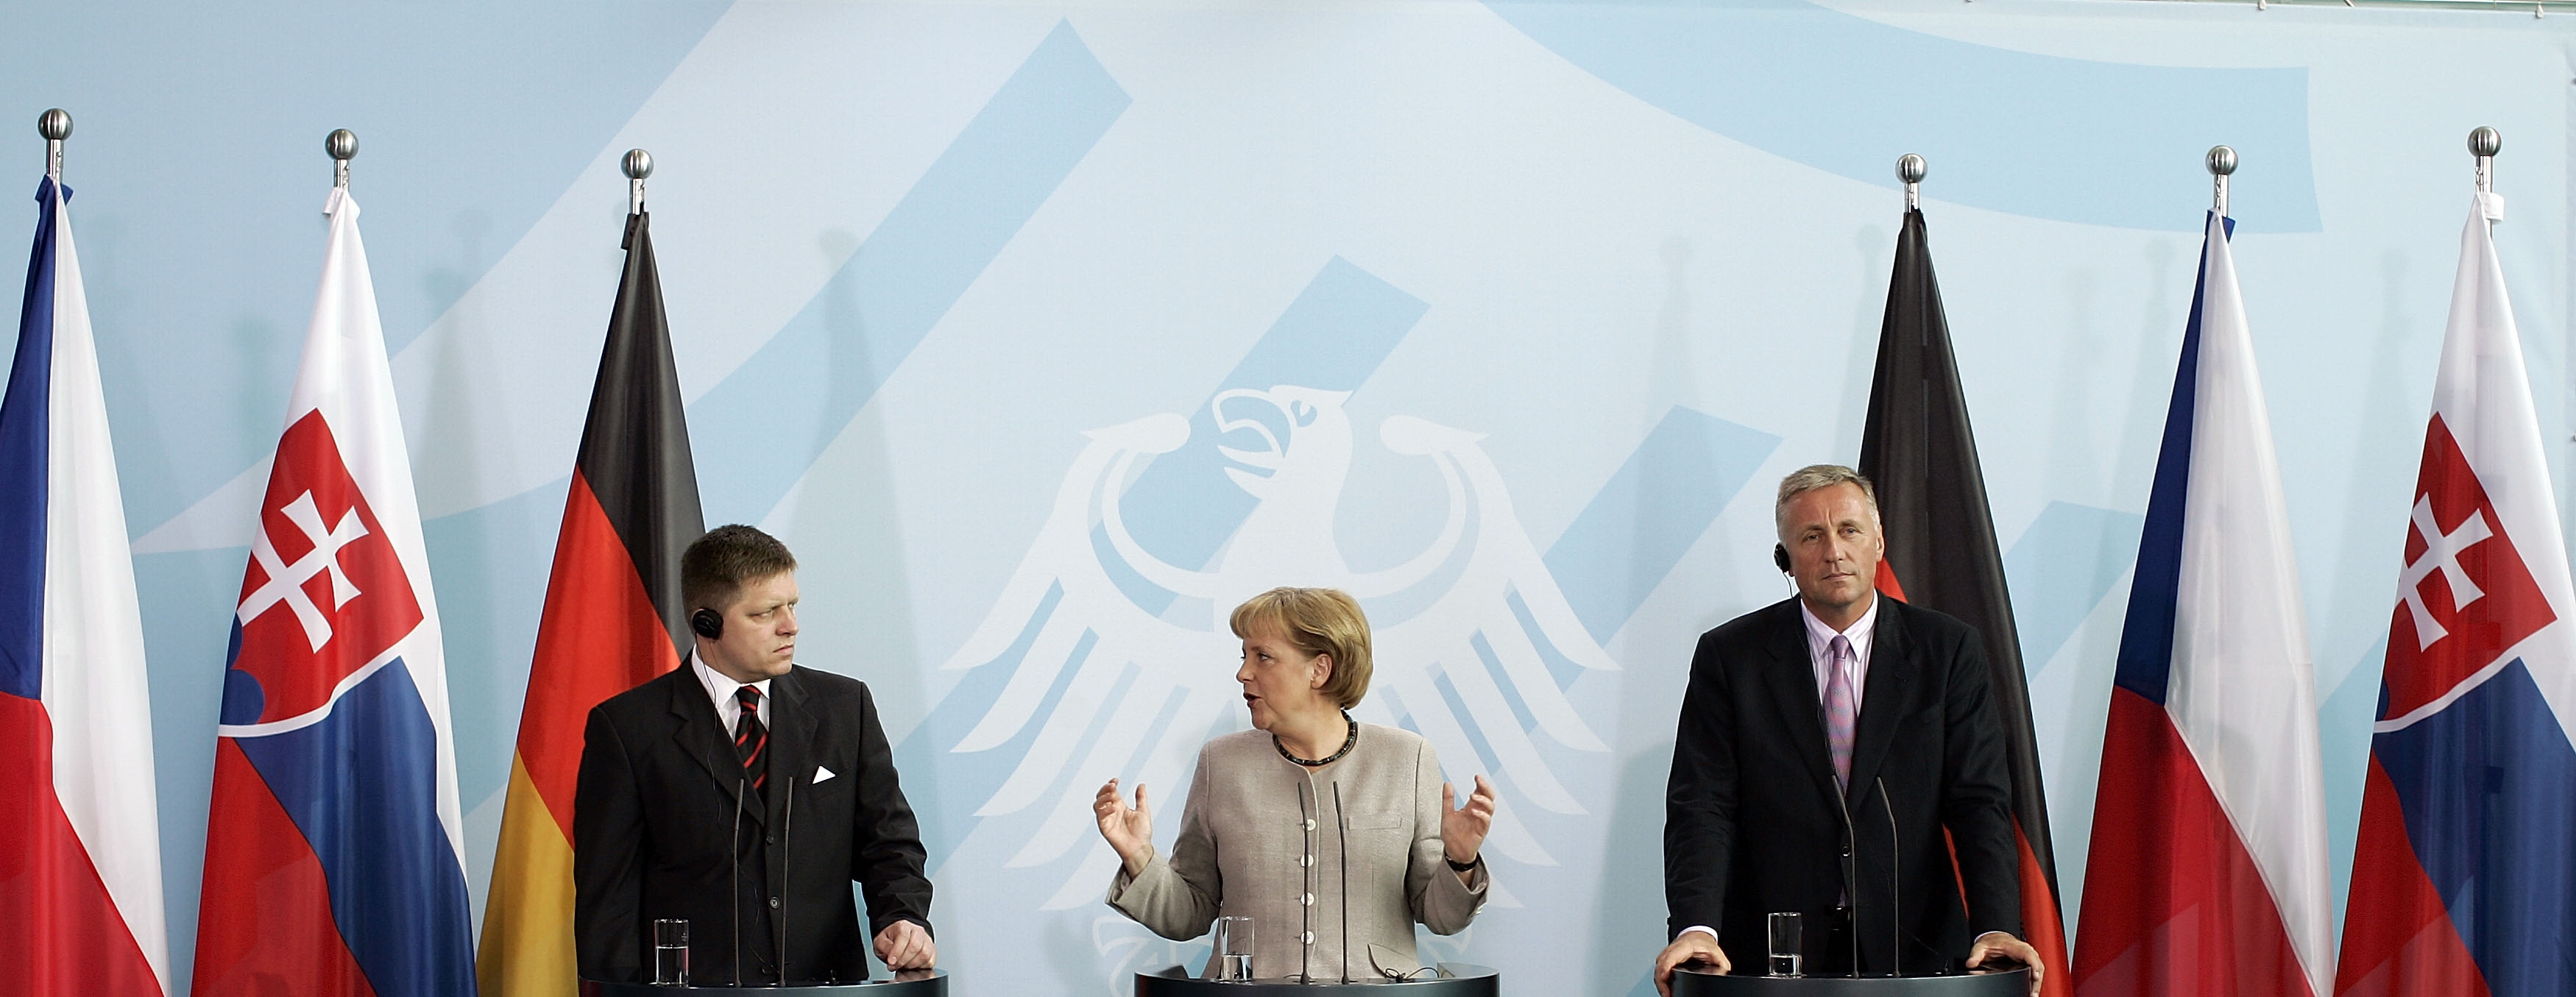 Merkel Meets With Czech And Slovak Presidents